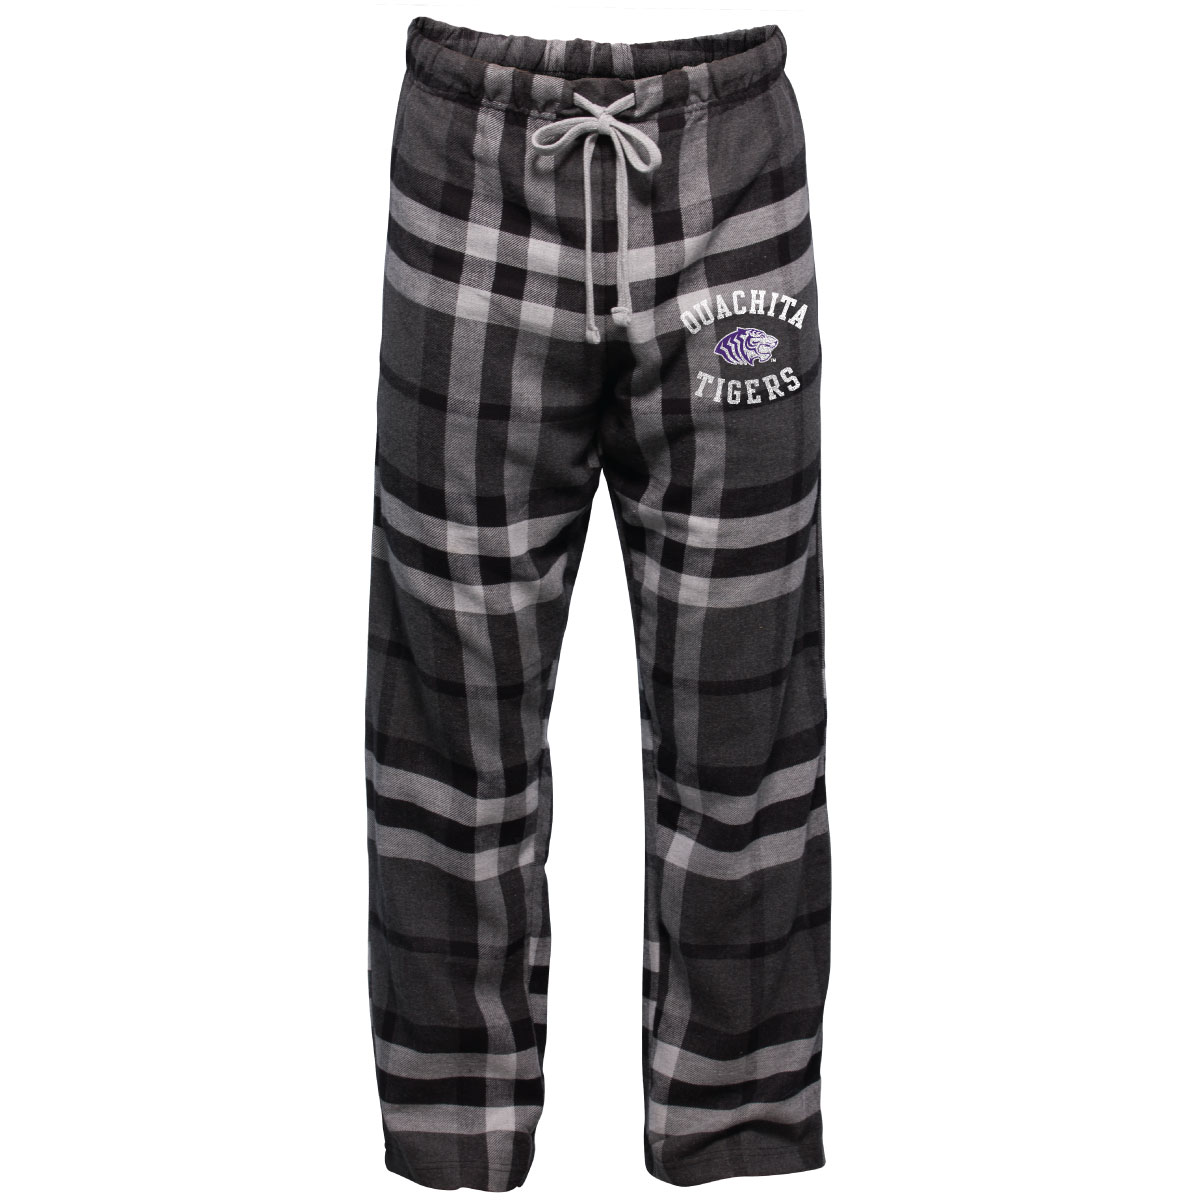 OUACHITA TIGERS GRAND SLAM FLANNEL PANTS